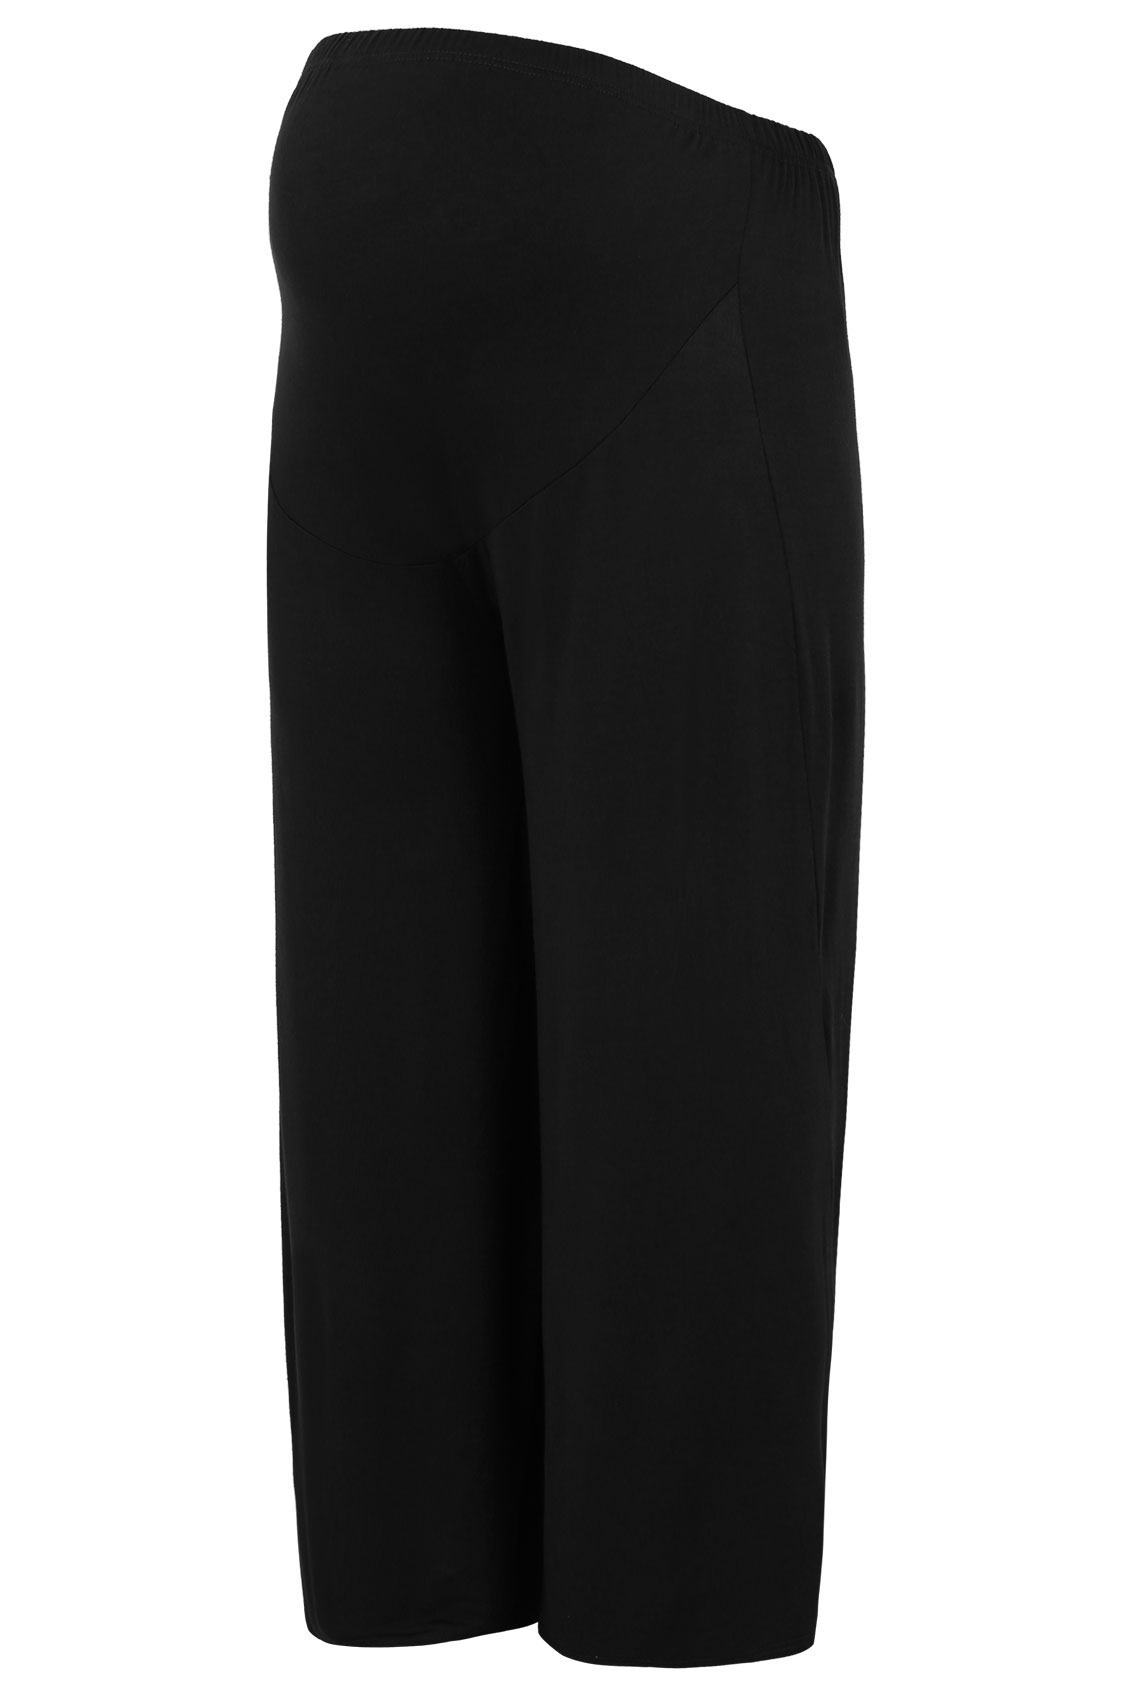 Rooms: BUMP IT UP MATERNITY Black Palazzo Trousers With Comfort